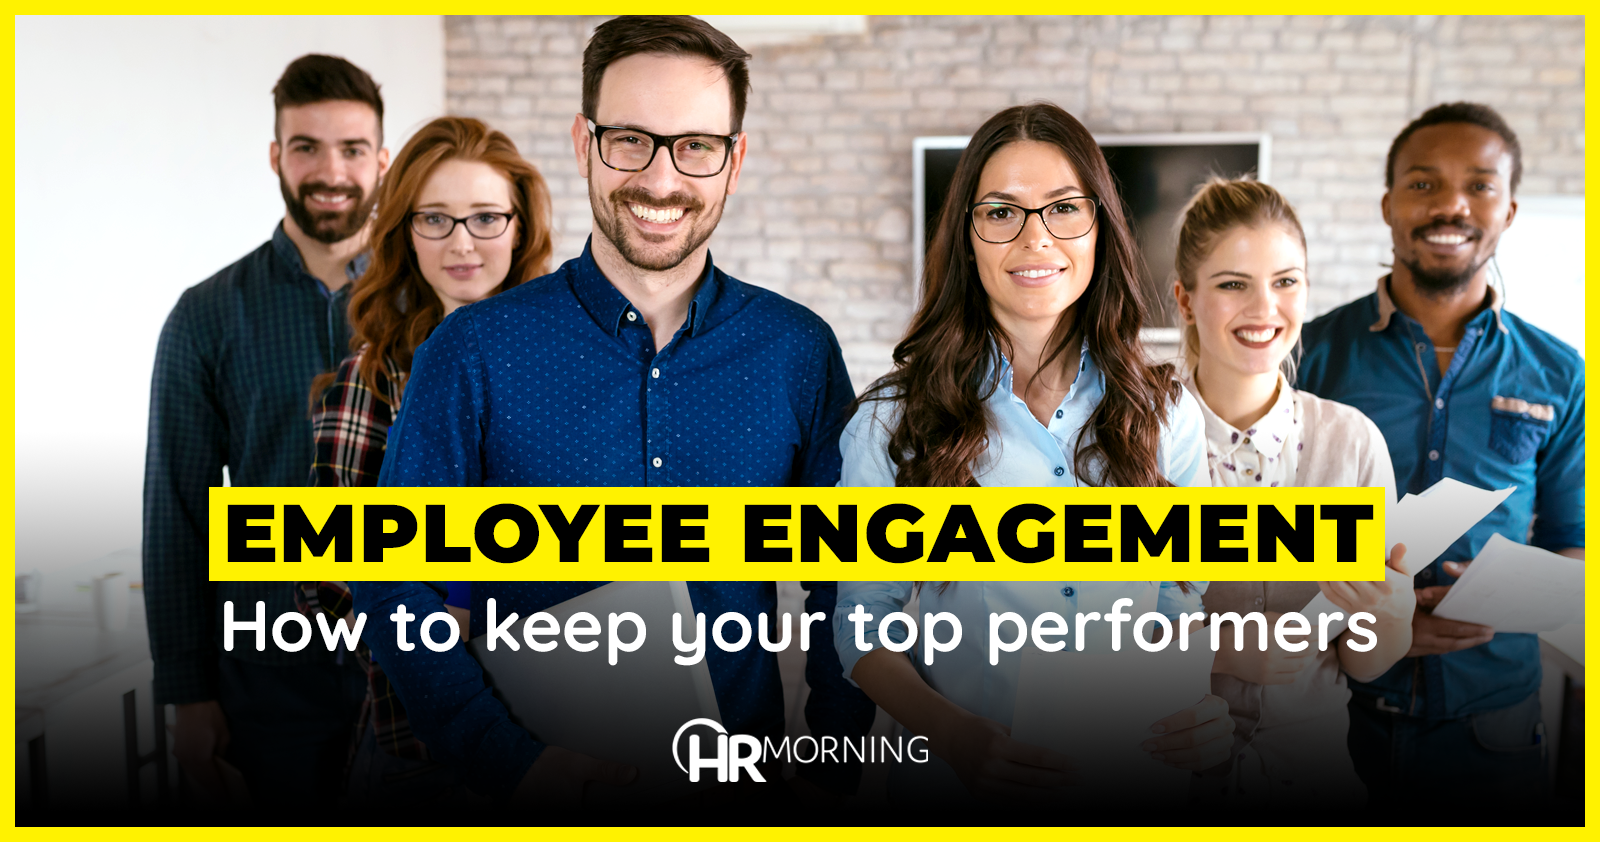 Employee engagement: How to keep your top performers